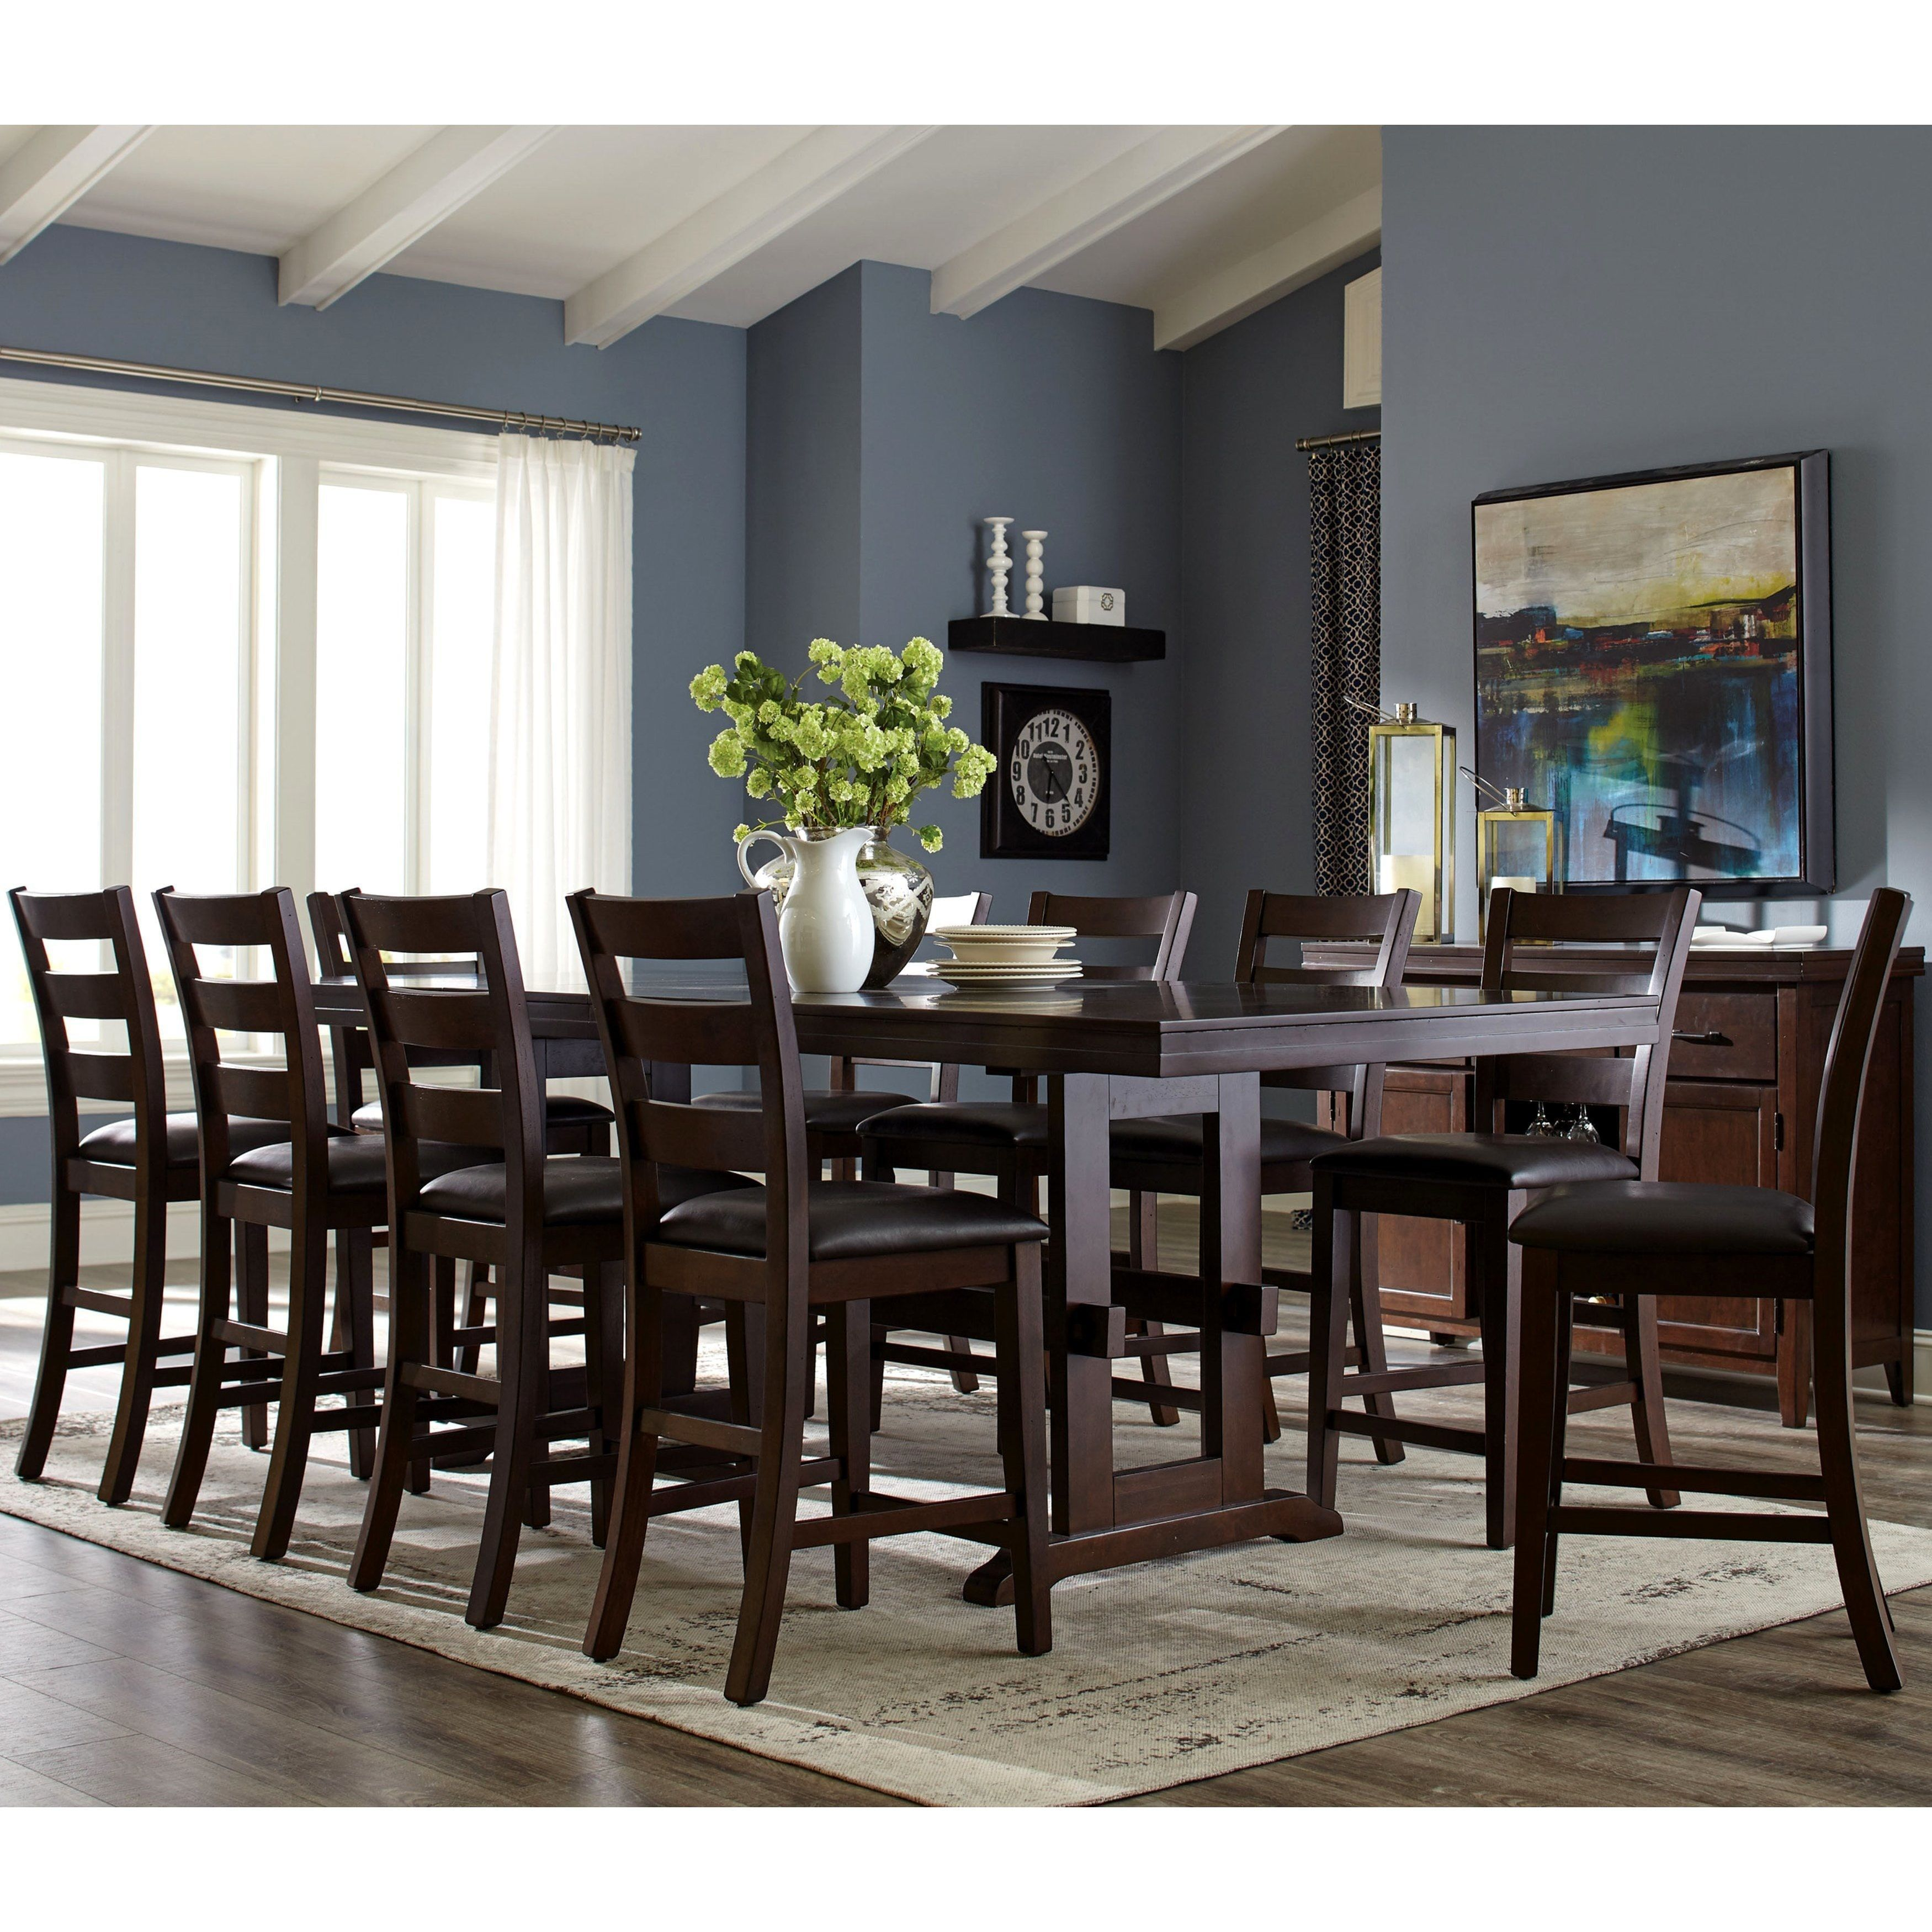 Dining Room Table Length: Trestle Base Counter Height Dining Set With Ladder Back